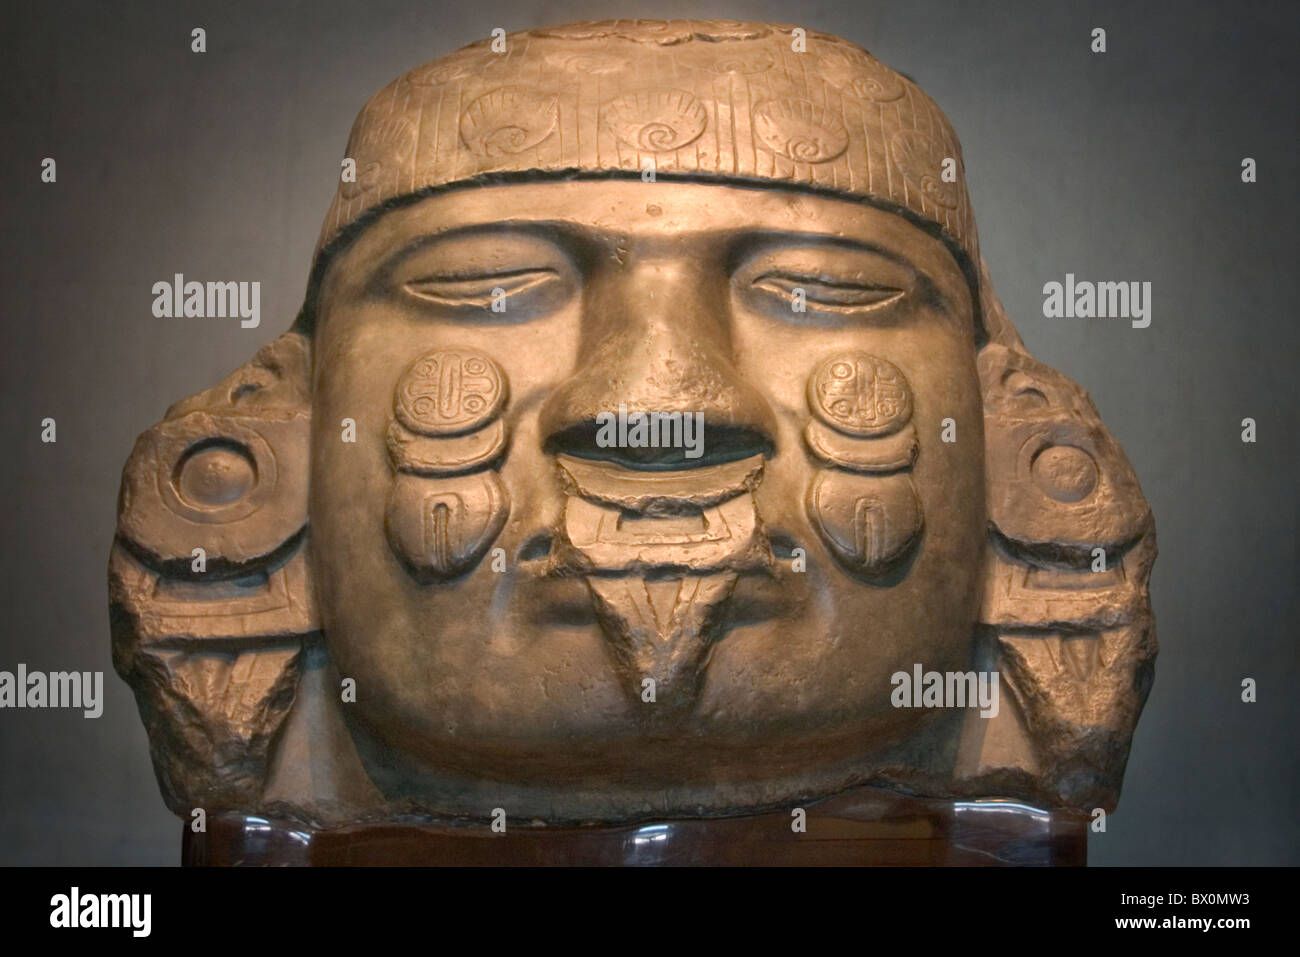 Statue of Aztec moon goddess Coyolxauhqui 'Woman with bells on her cheeks', National Museum of Anthropology - Stock Image